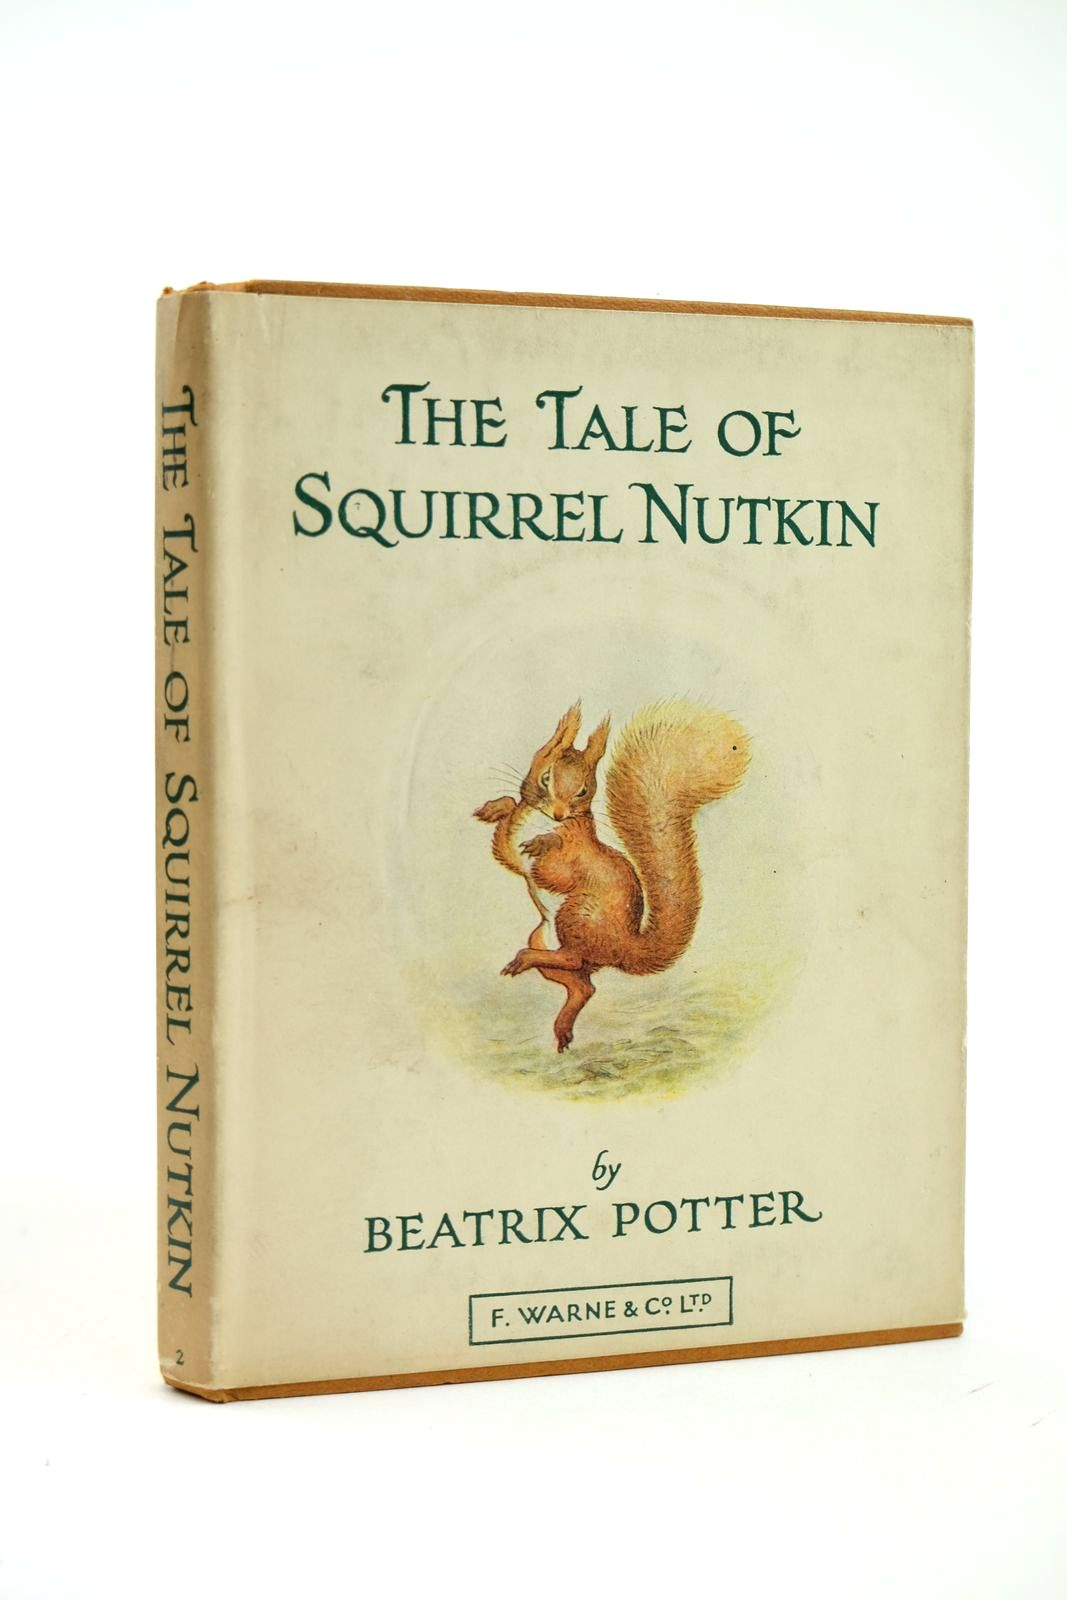 Photo of THE TALE OF SQUIRREL NUTKIN written by Potter, Beatrix illustrated by Potter, Beatrix published by Frederick Warne & Co Ltd. (STOCK CODE: 2131895)  for sale by Stella & Rose's Books